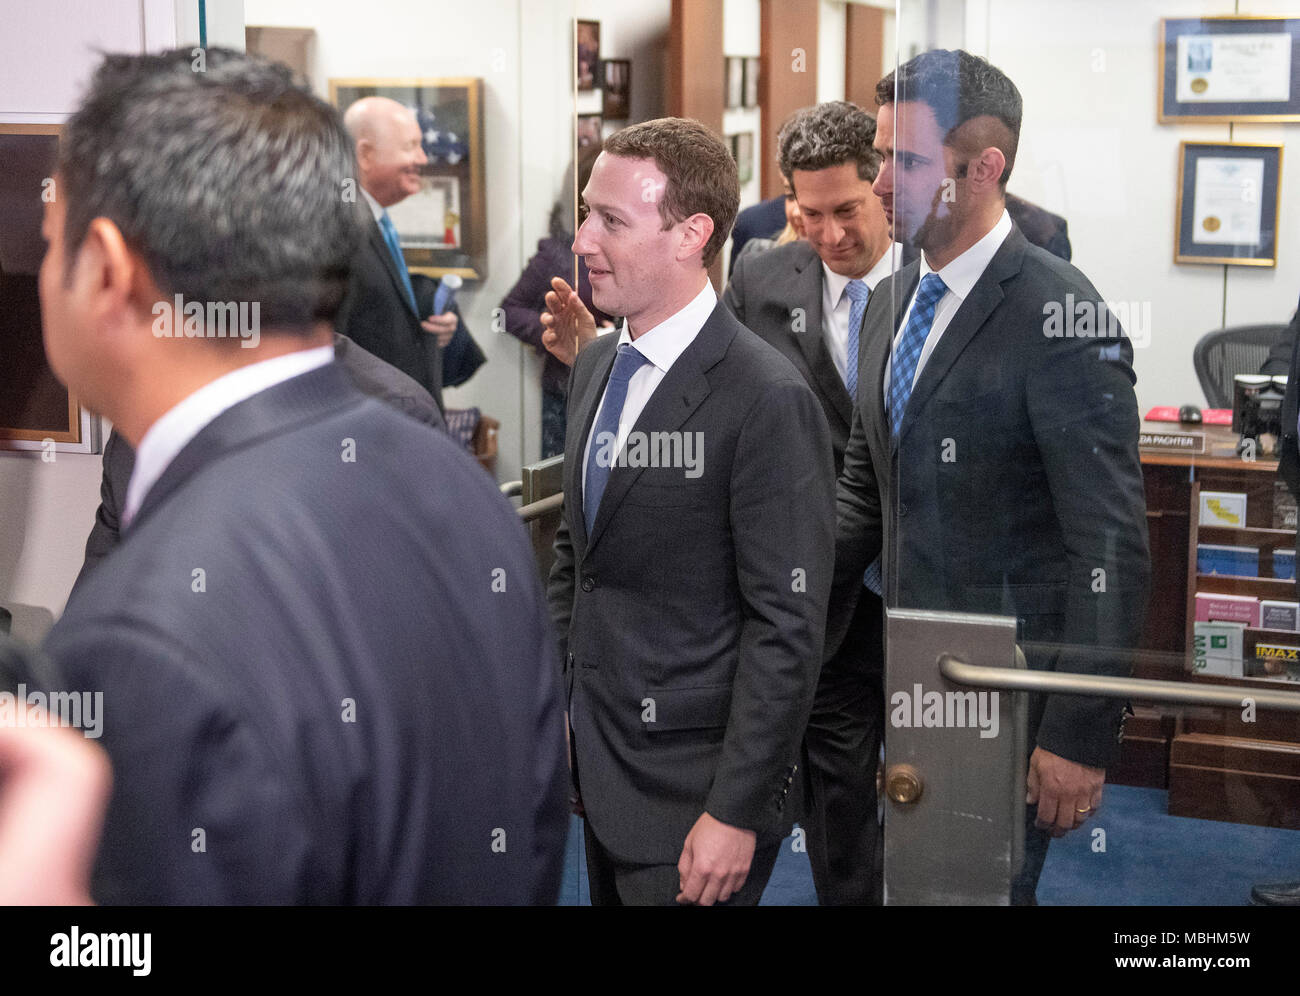 facebook office usa. Washington, USA. 09th Apr, 2018. Surrounded By Staff And Security, Mark Facebook Office Usa